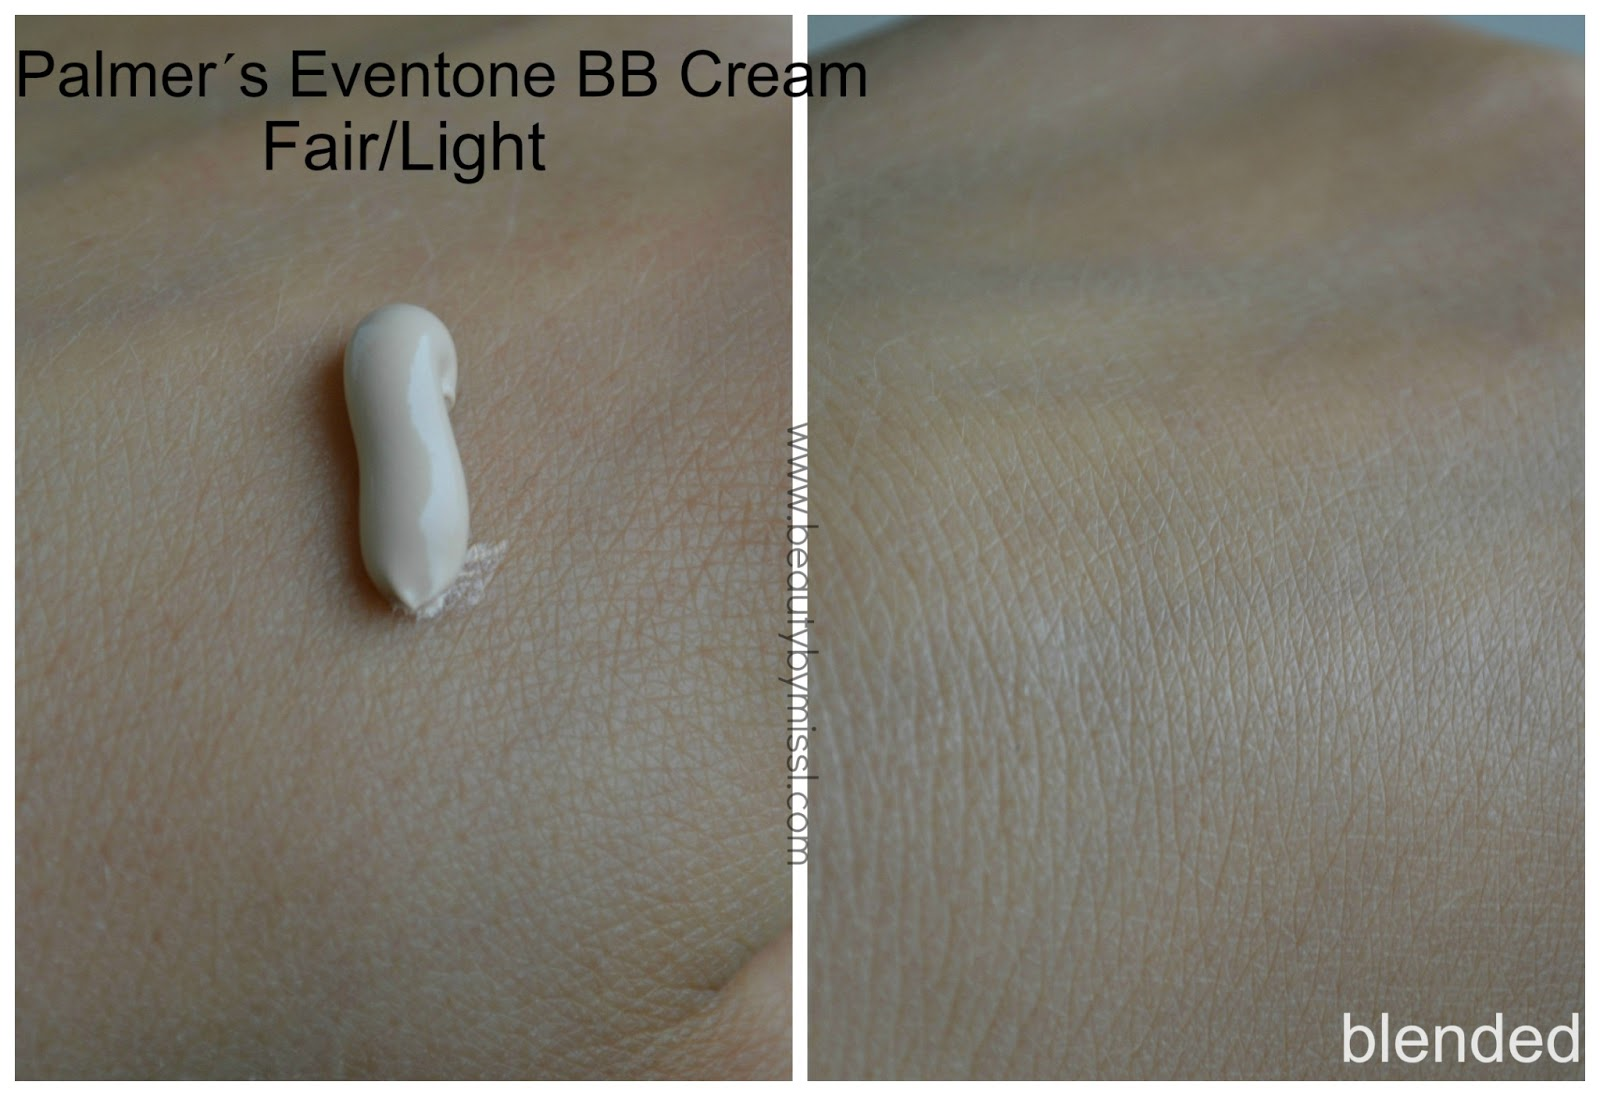 eventone bb cream swatch blended on skin